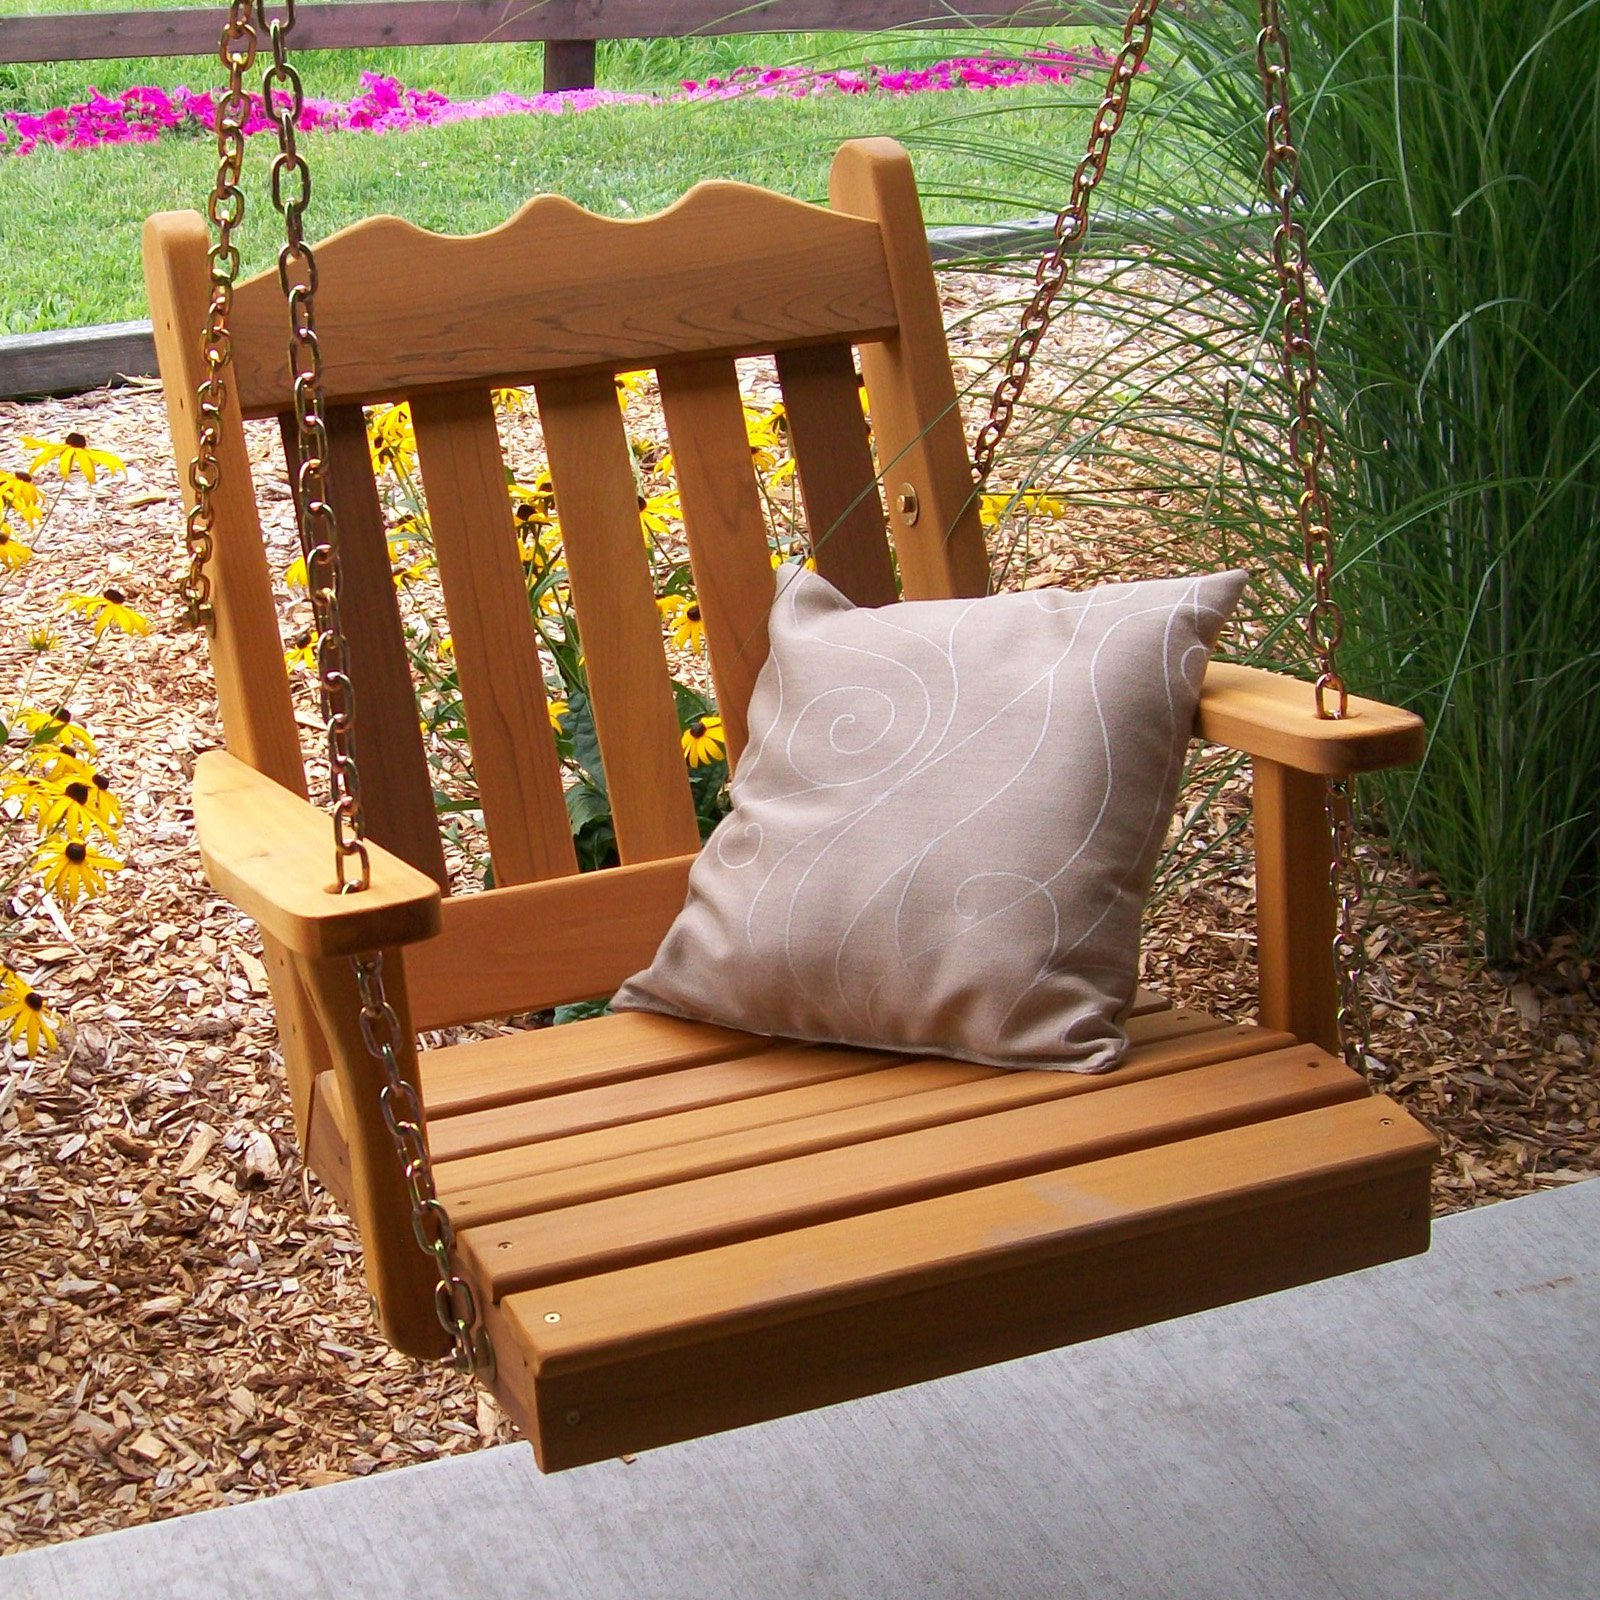 A & L Furniture Western Red Cedar Royal English 2 ft. Chair Swing with Chains